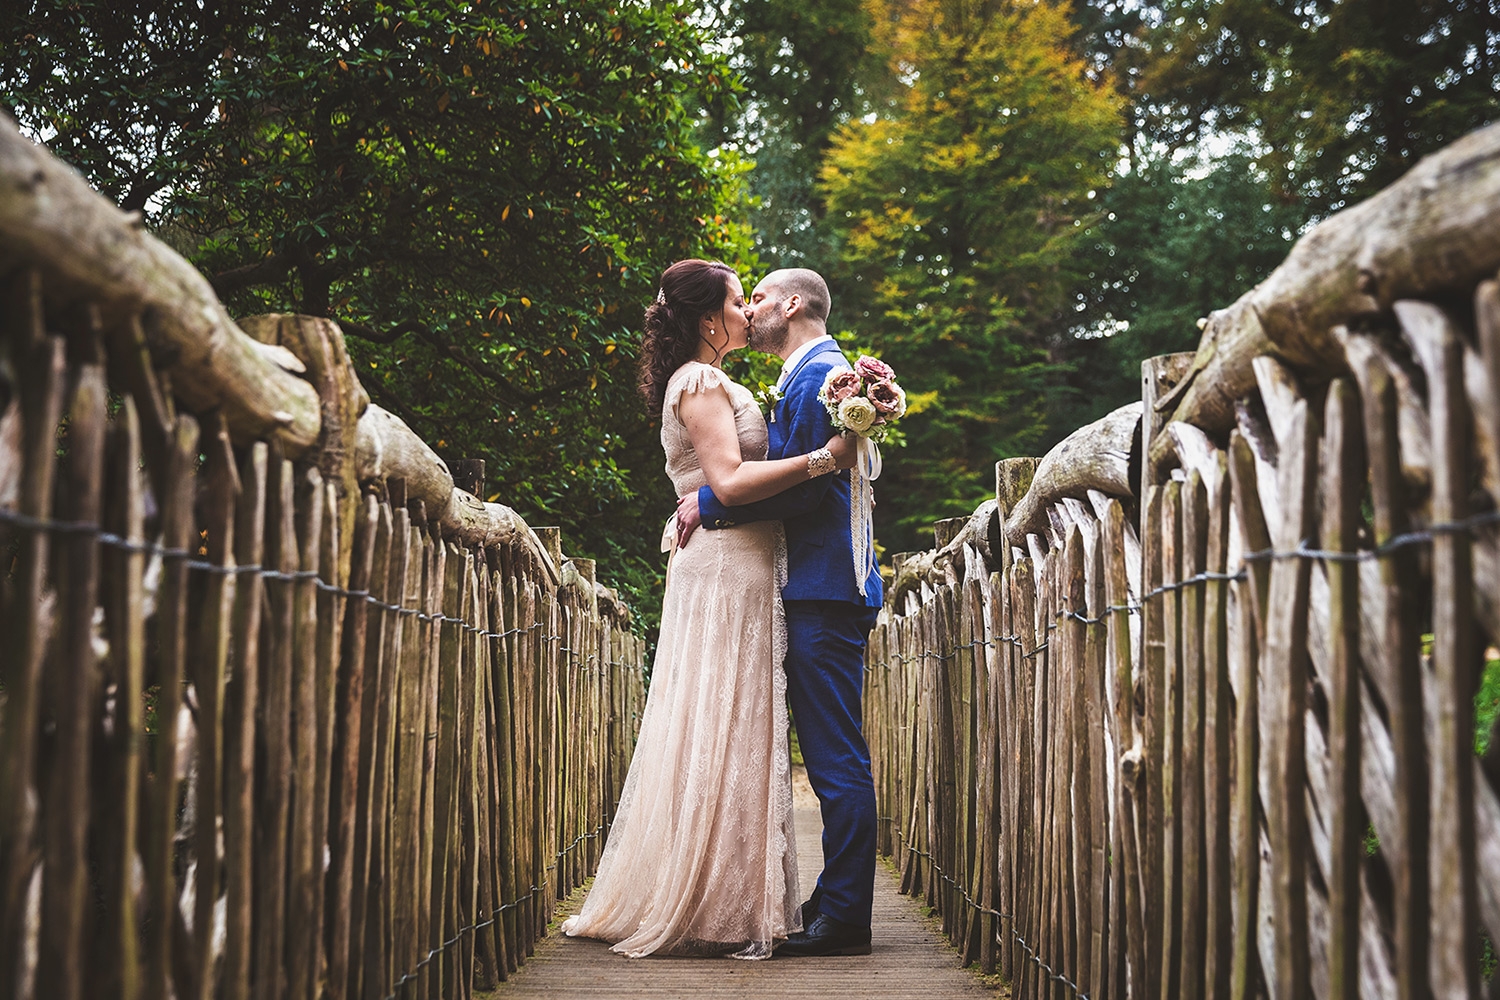 Clair and Paul's Quarry Bank Mill wedding